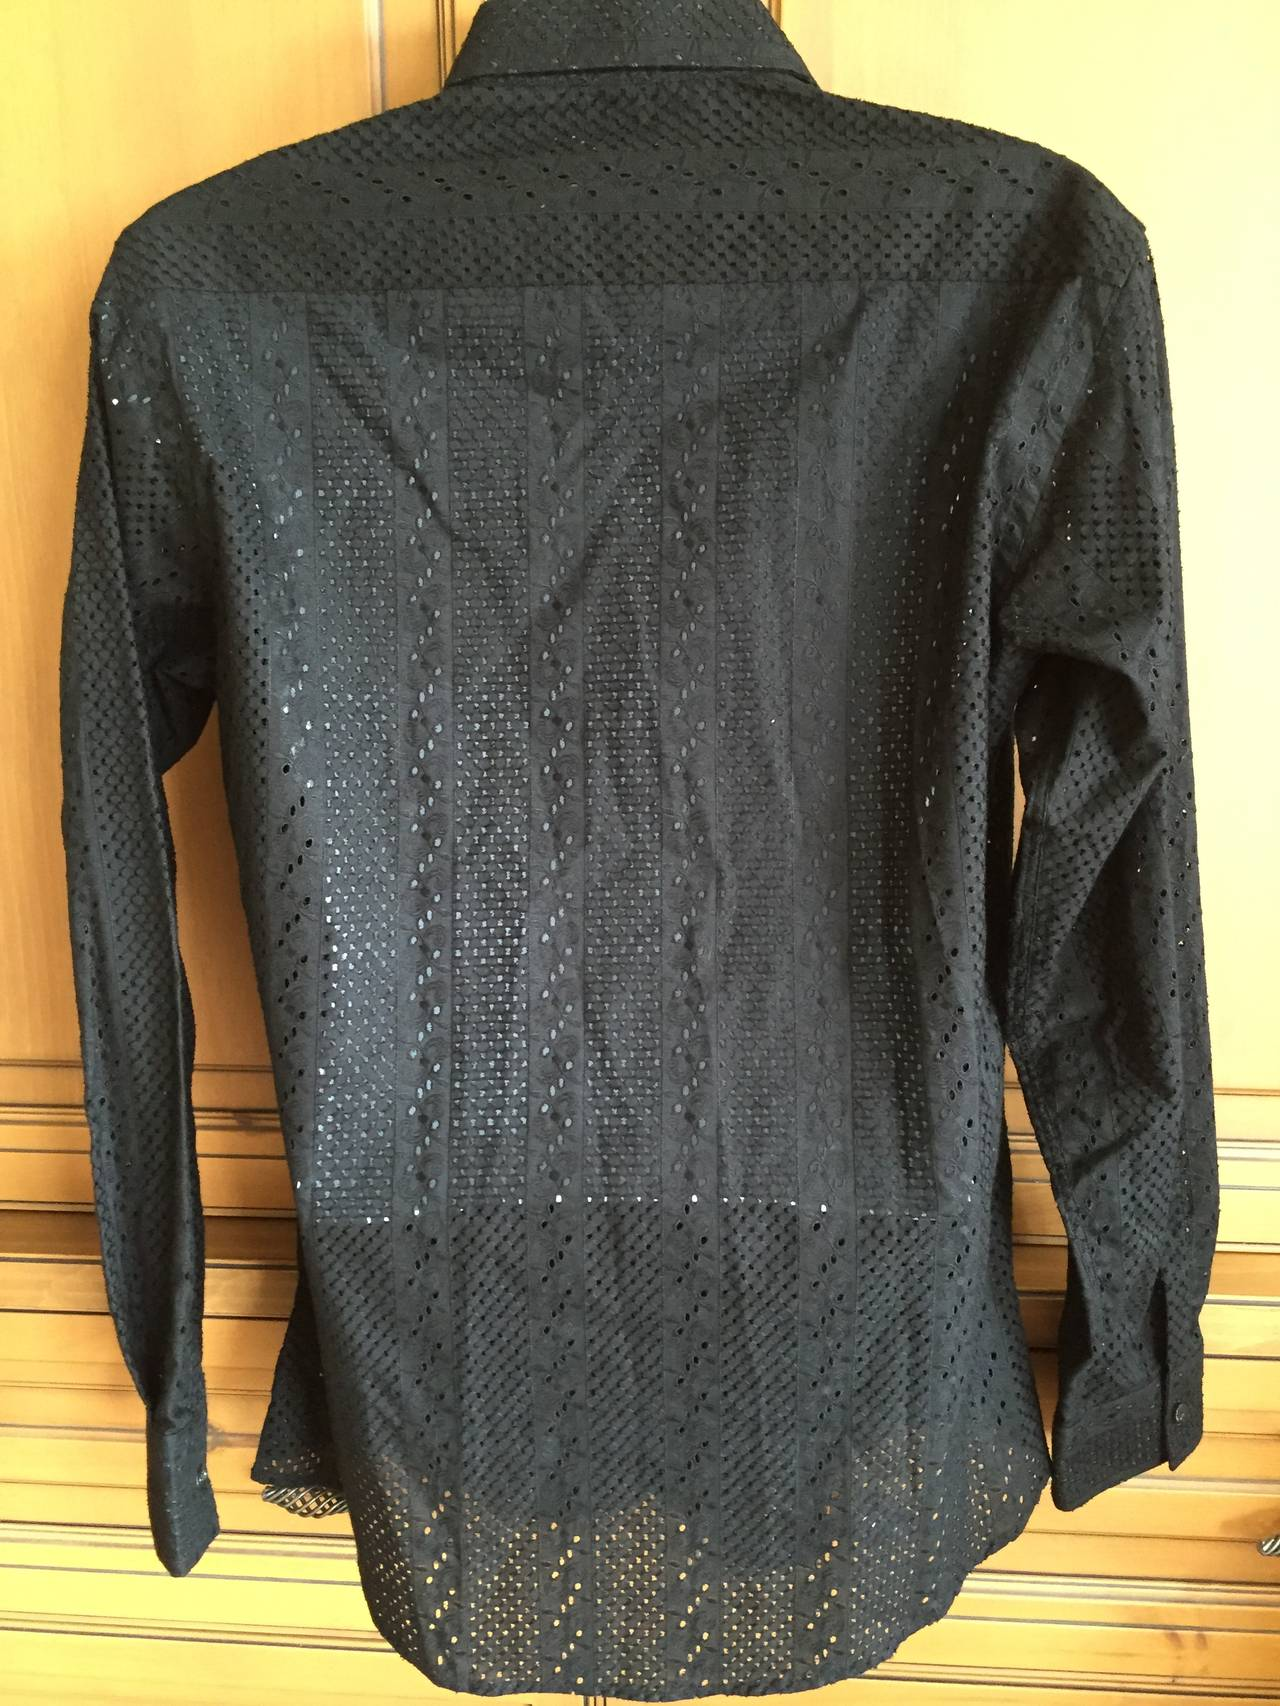 Gianni versace 1990 mens black cotton eyelet lace shirt at for Versace style shirt mens